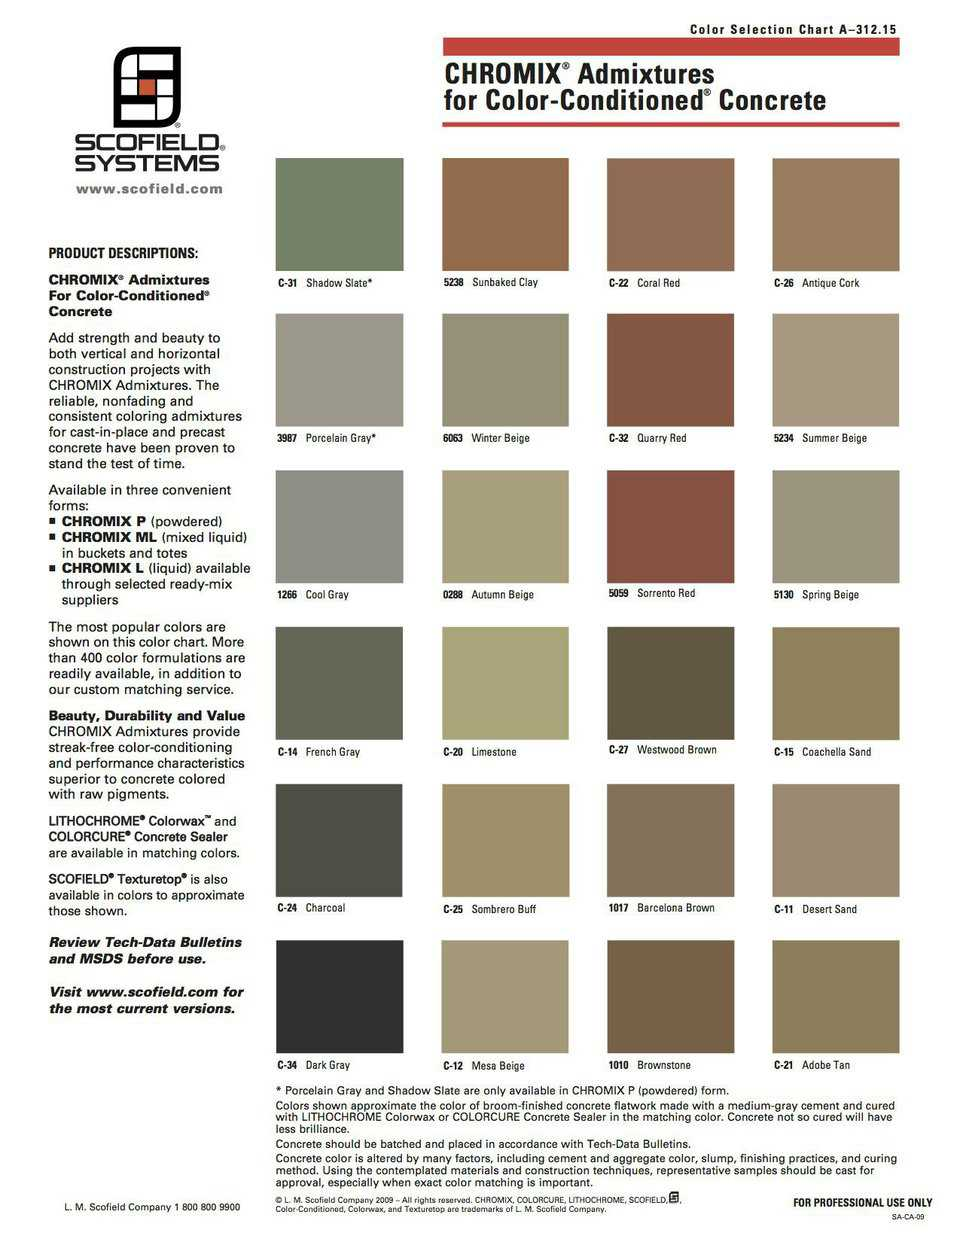 Color Chart – Color-Conditioned Concrete